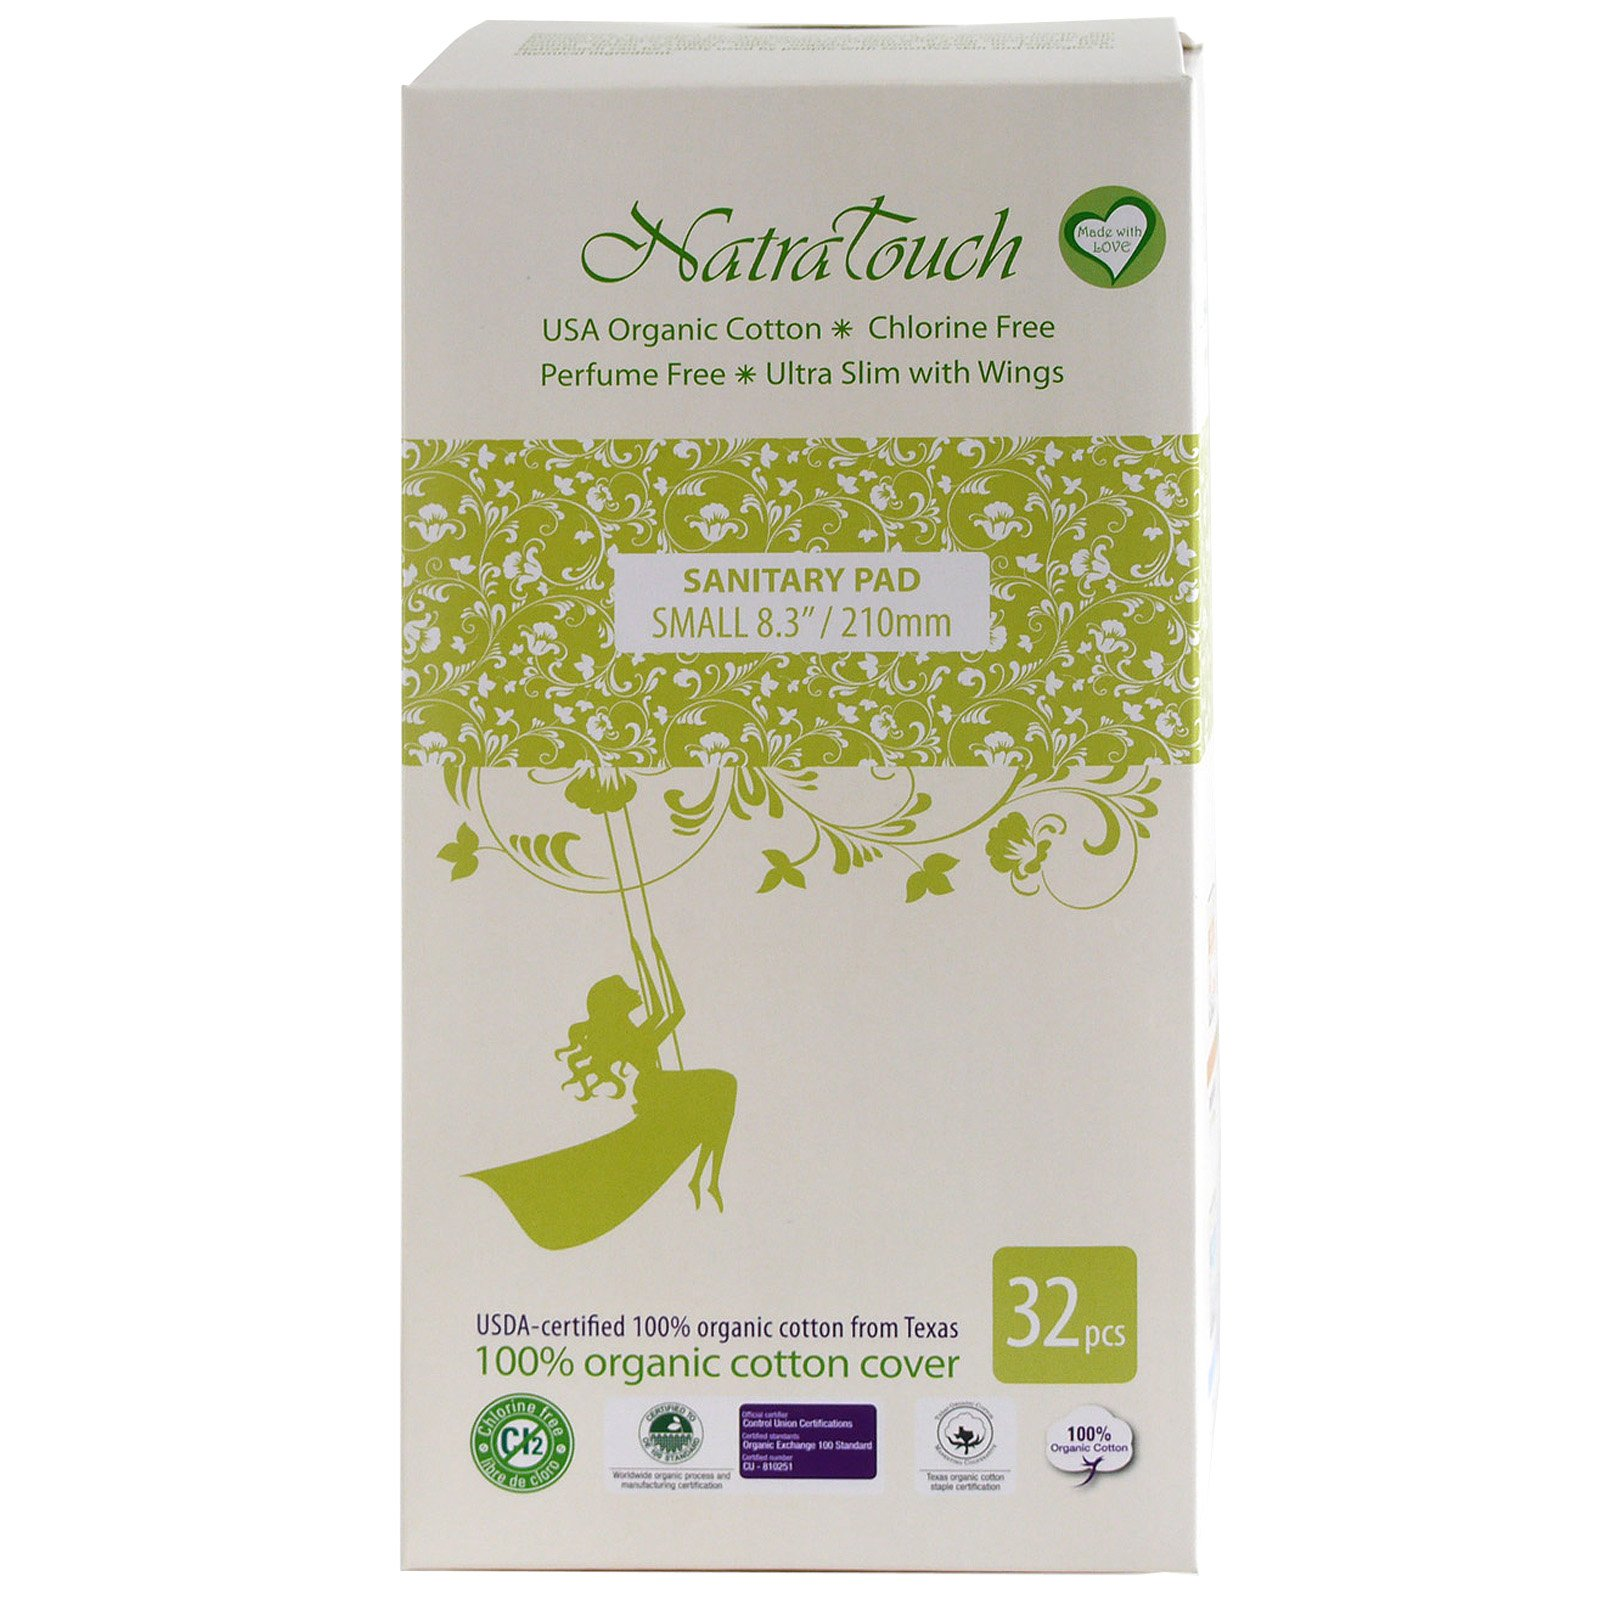 Natratouch Organic Cotton Sanitary Pads Ultra Slim with Wings 32 piece (Small)